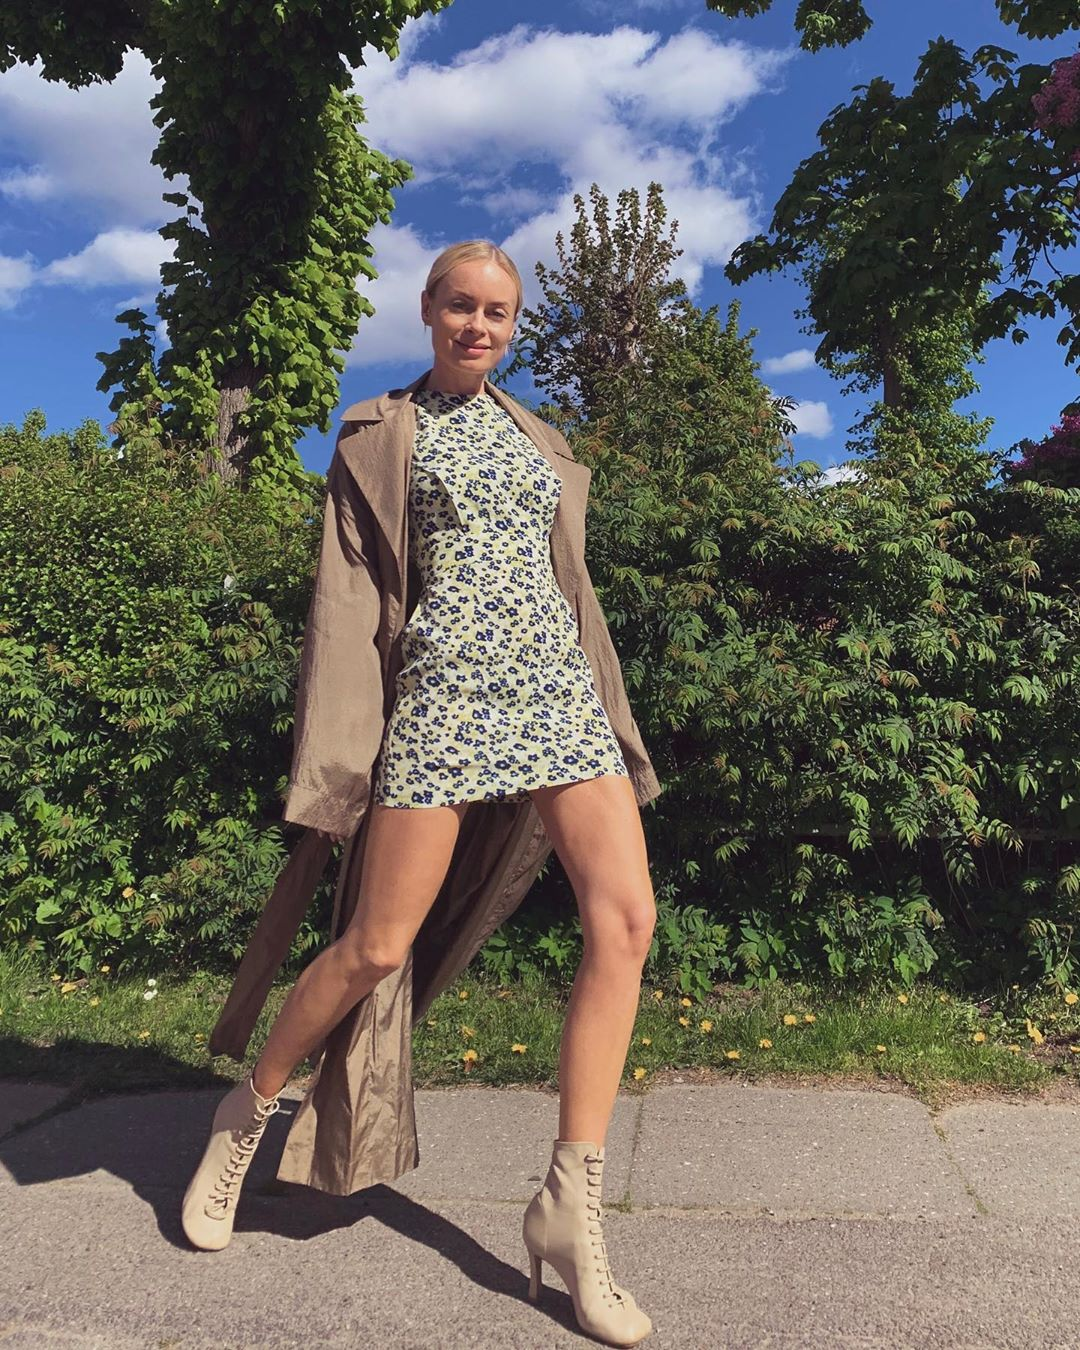 thora-valdimars-rotate-birger-christensen-wanda-daisy-dress-instagram